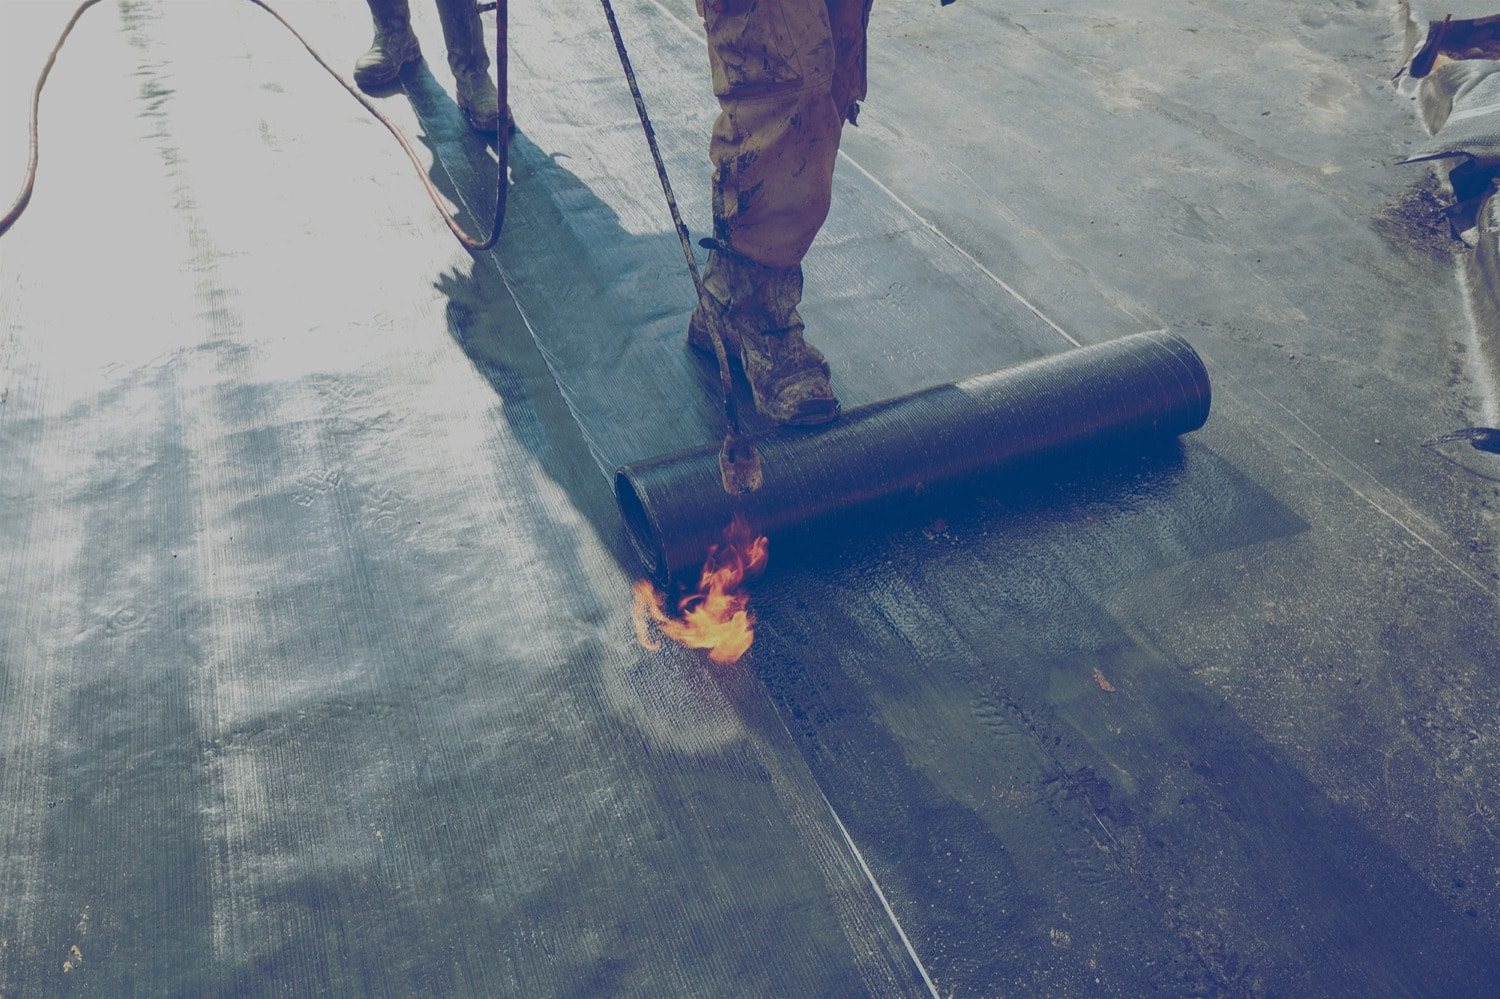 A construction worker using a propane-powered torch.